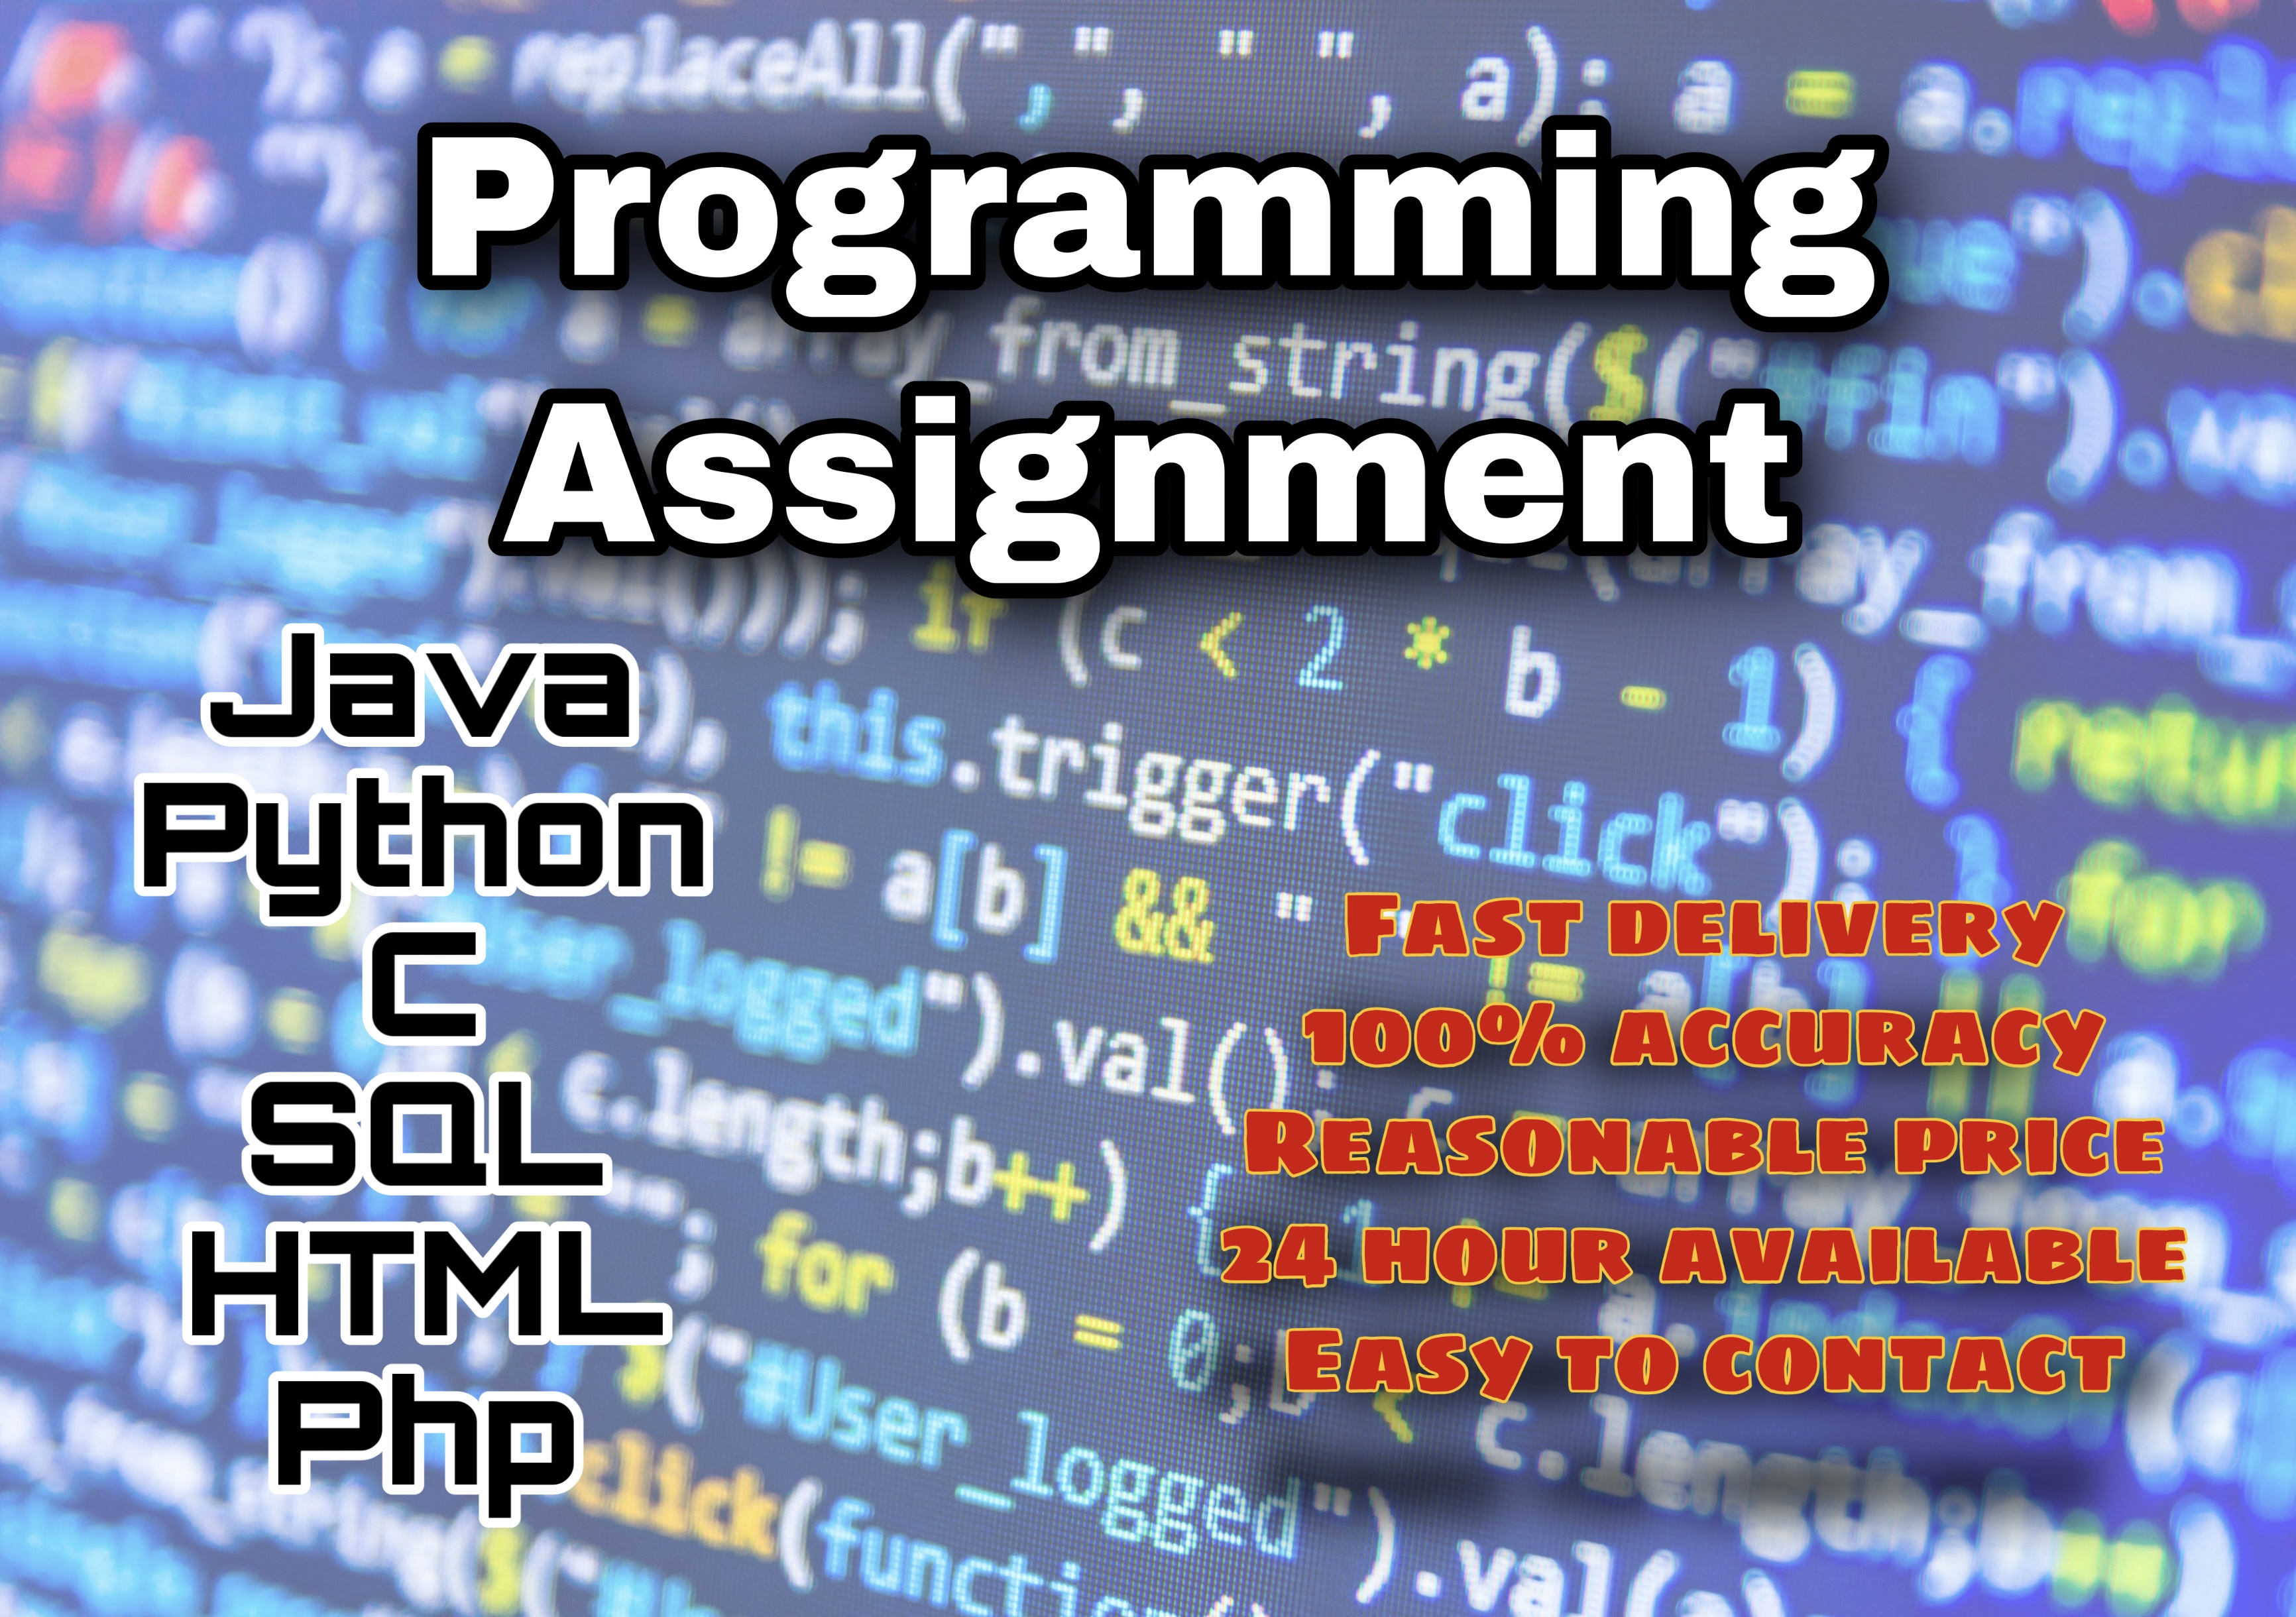 I will help you to do programing projects